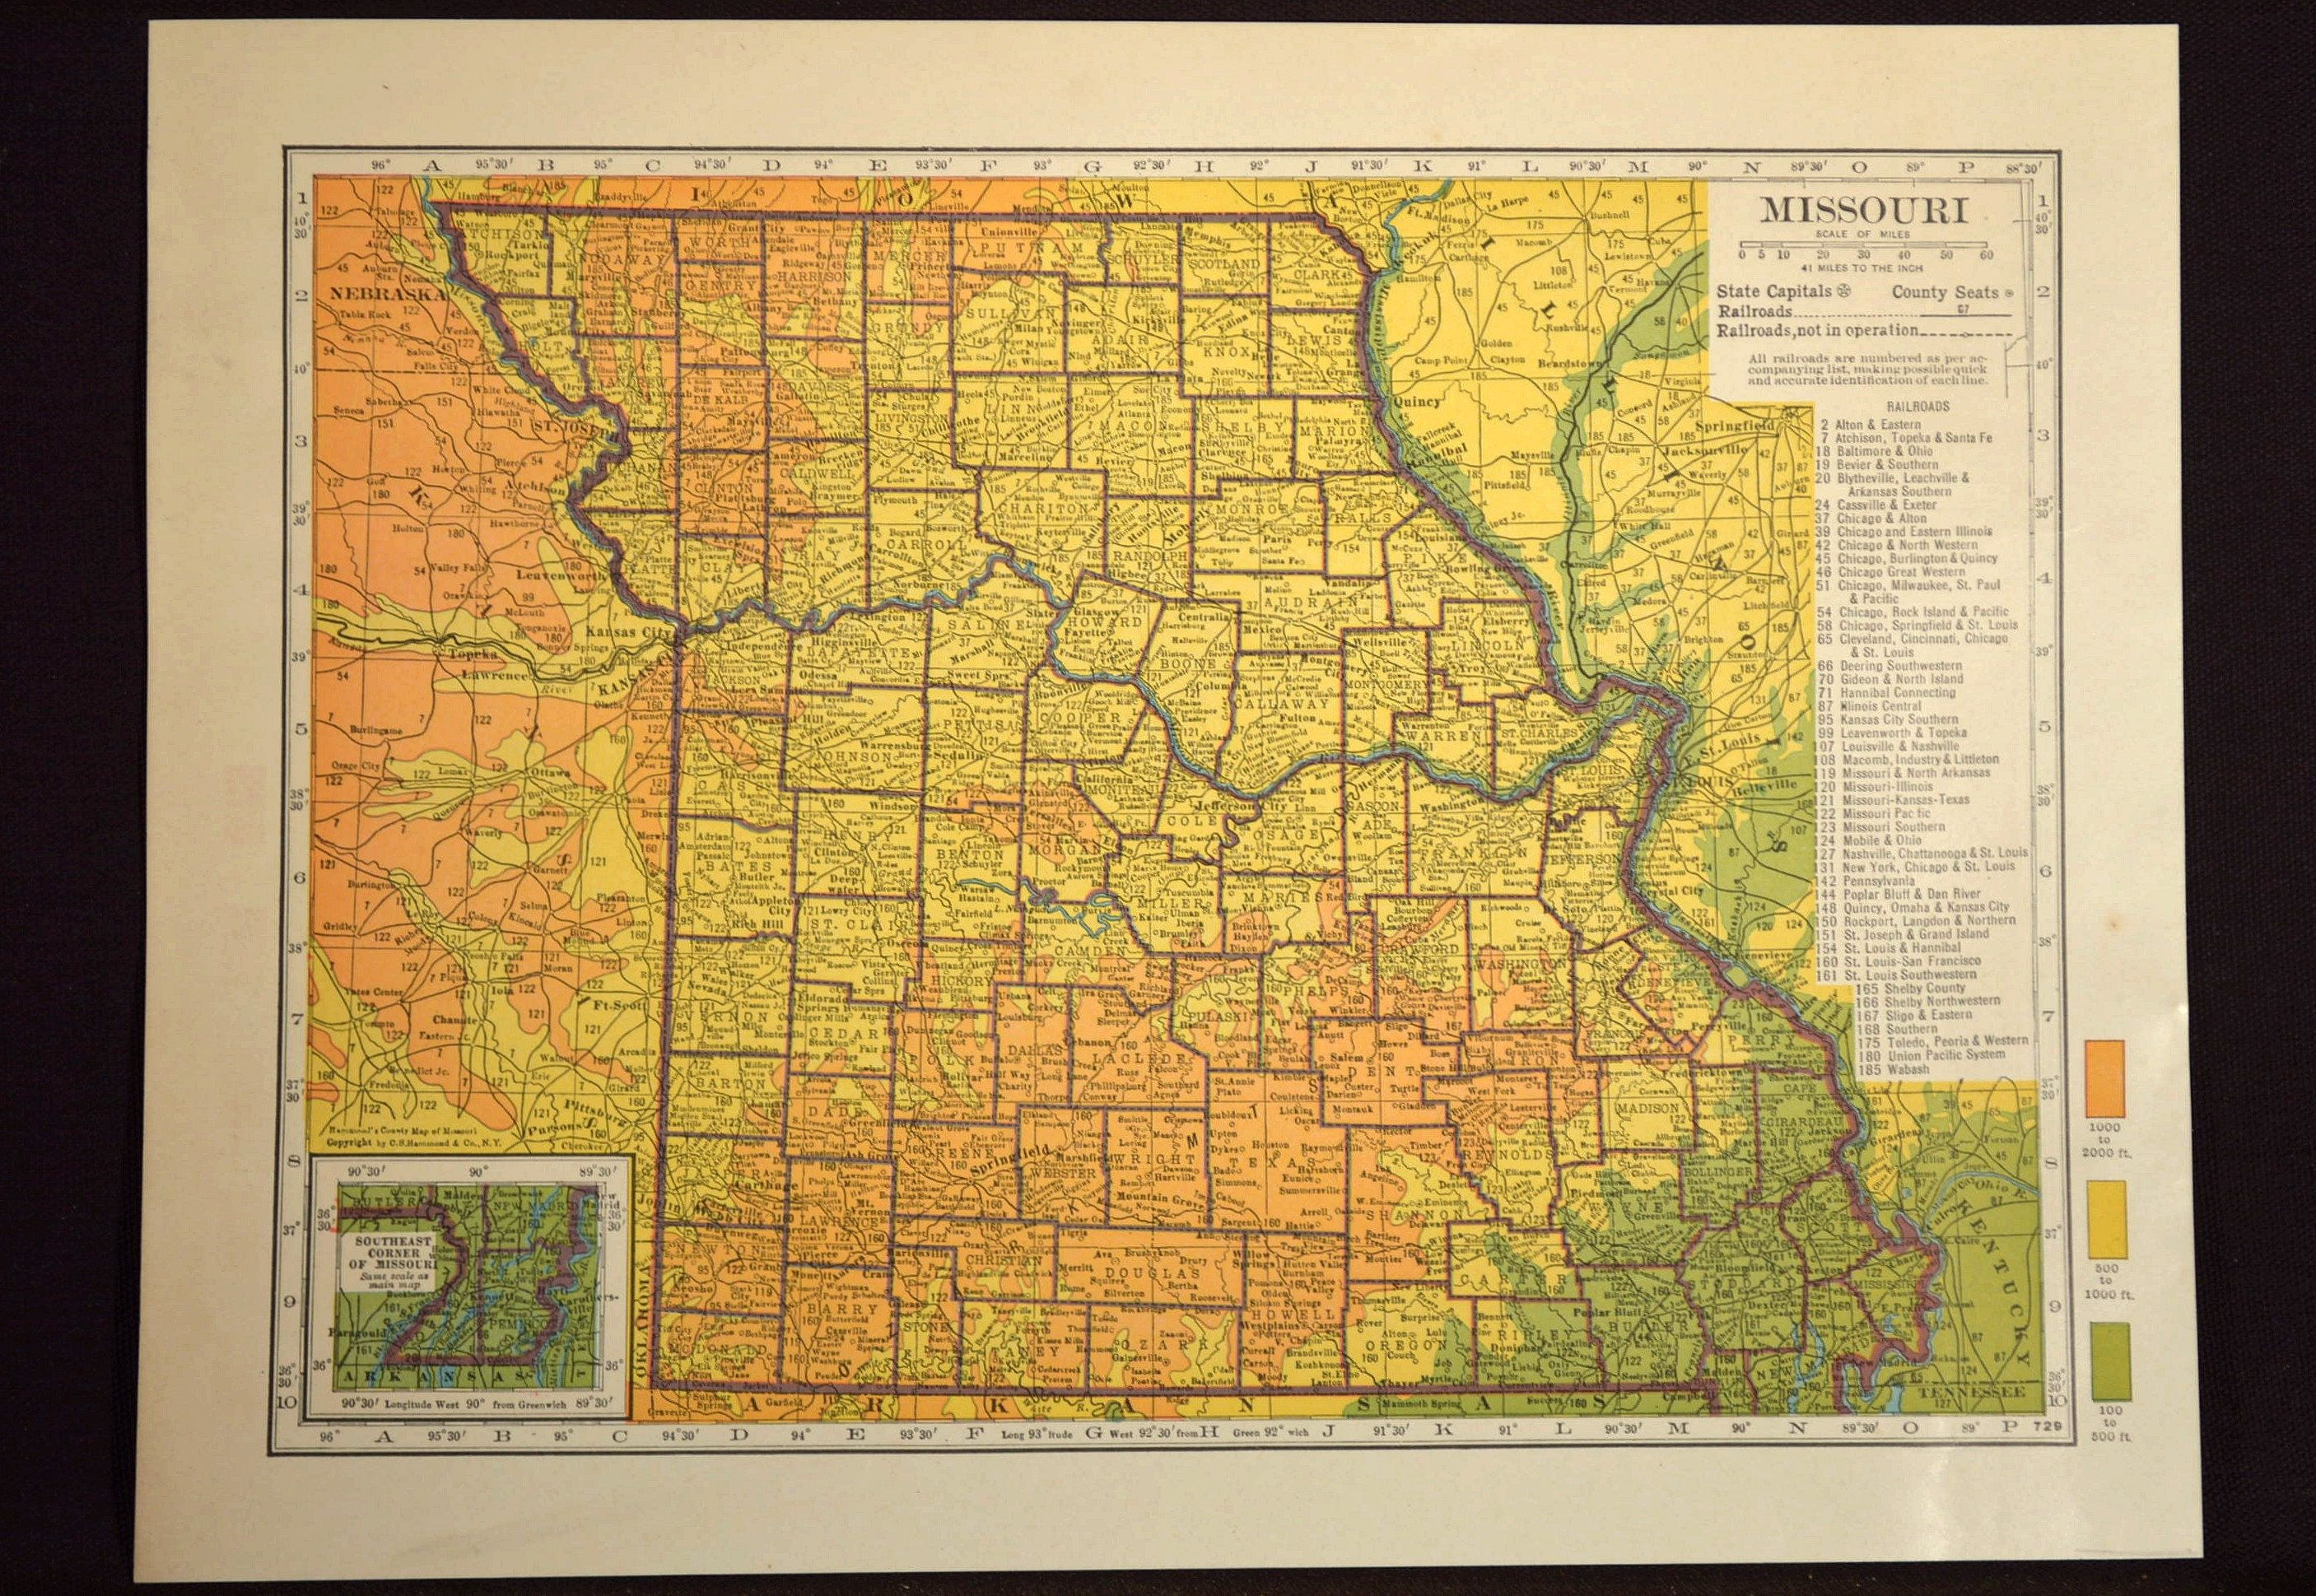 Missouri Map Missouri Topographic Map Colorful Colored Topo | Map ...